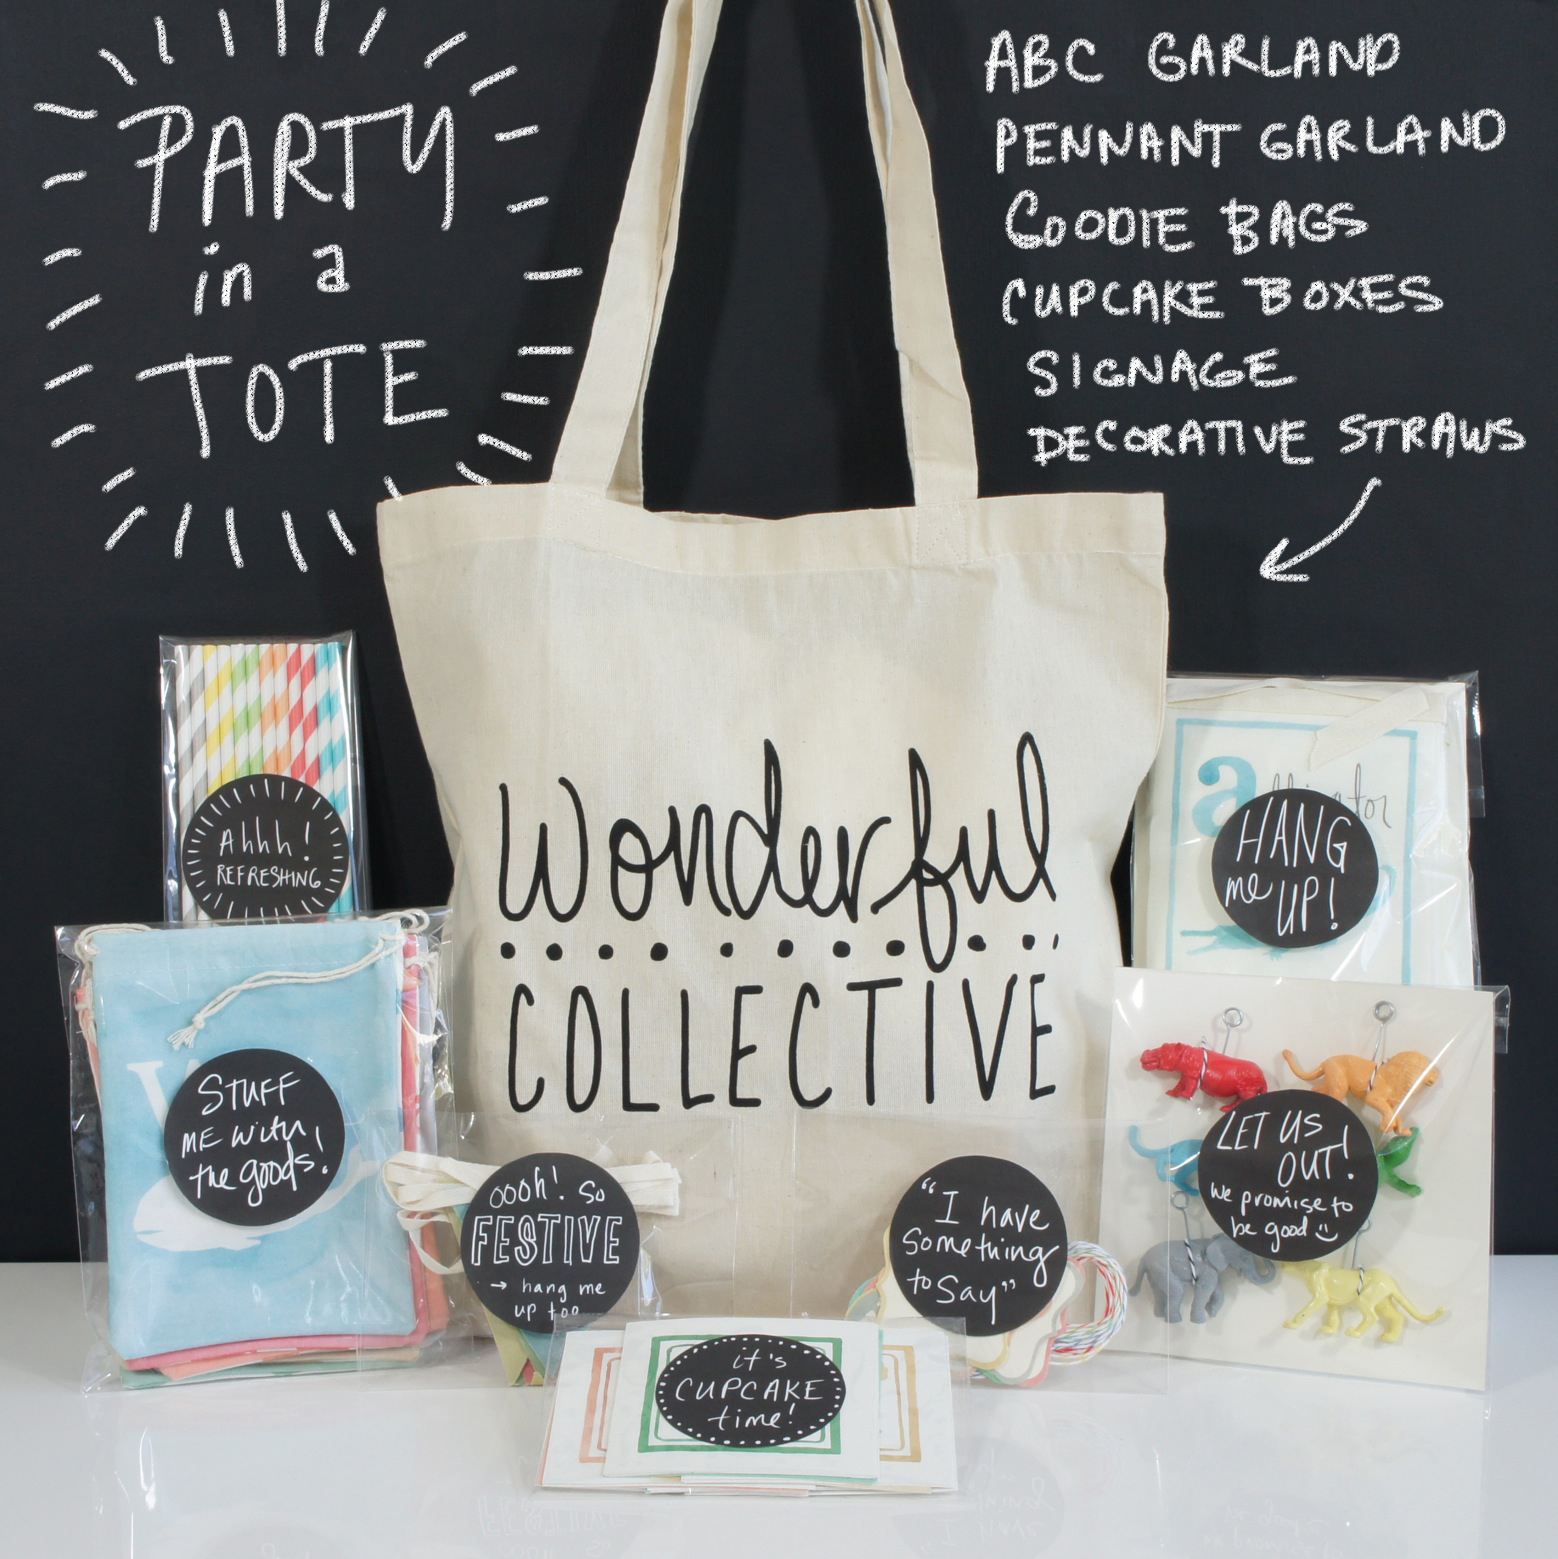 Party in a Tote.jpg